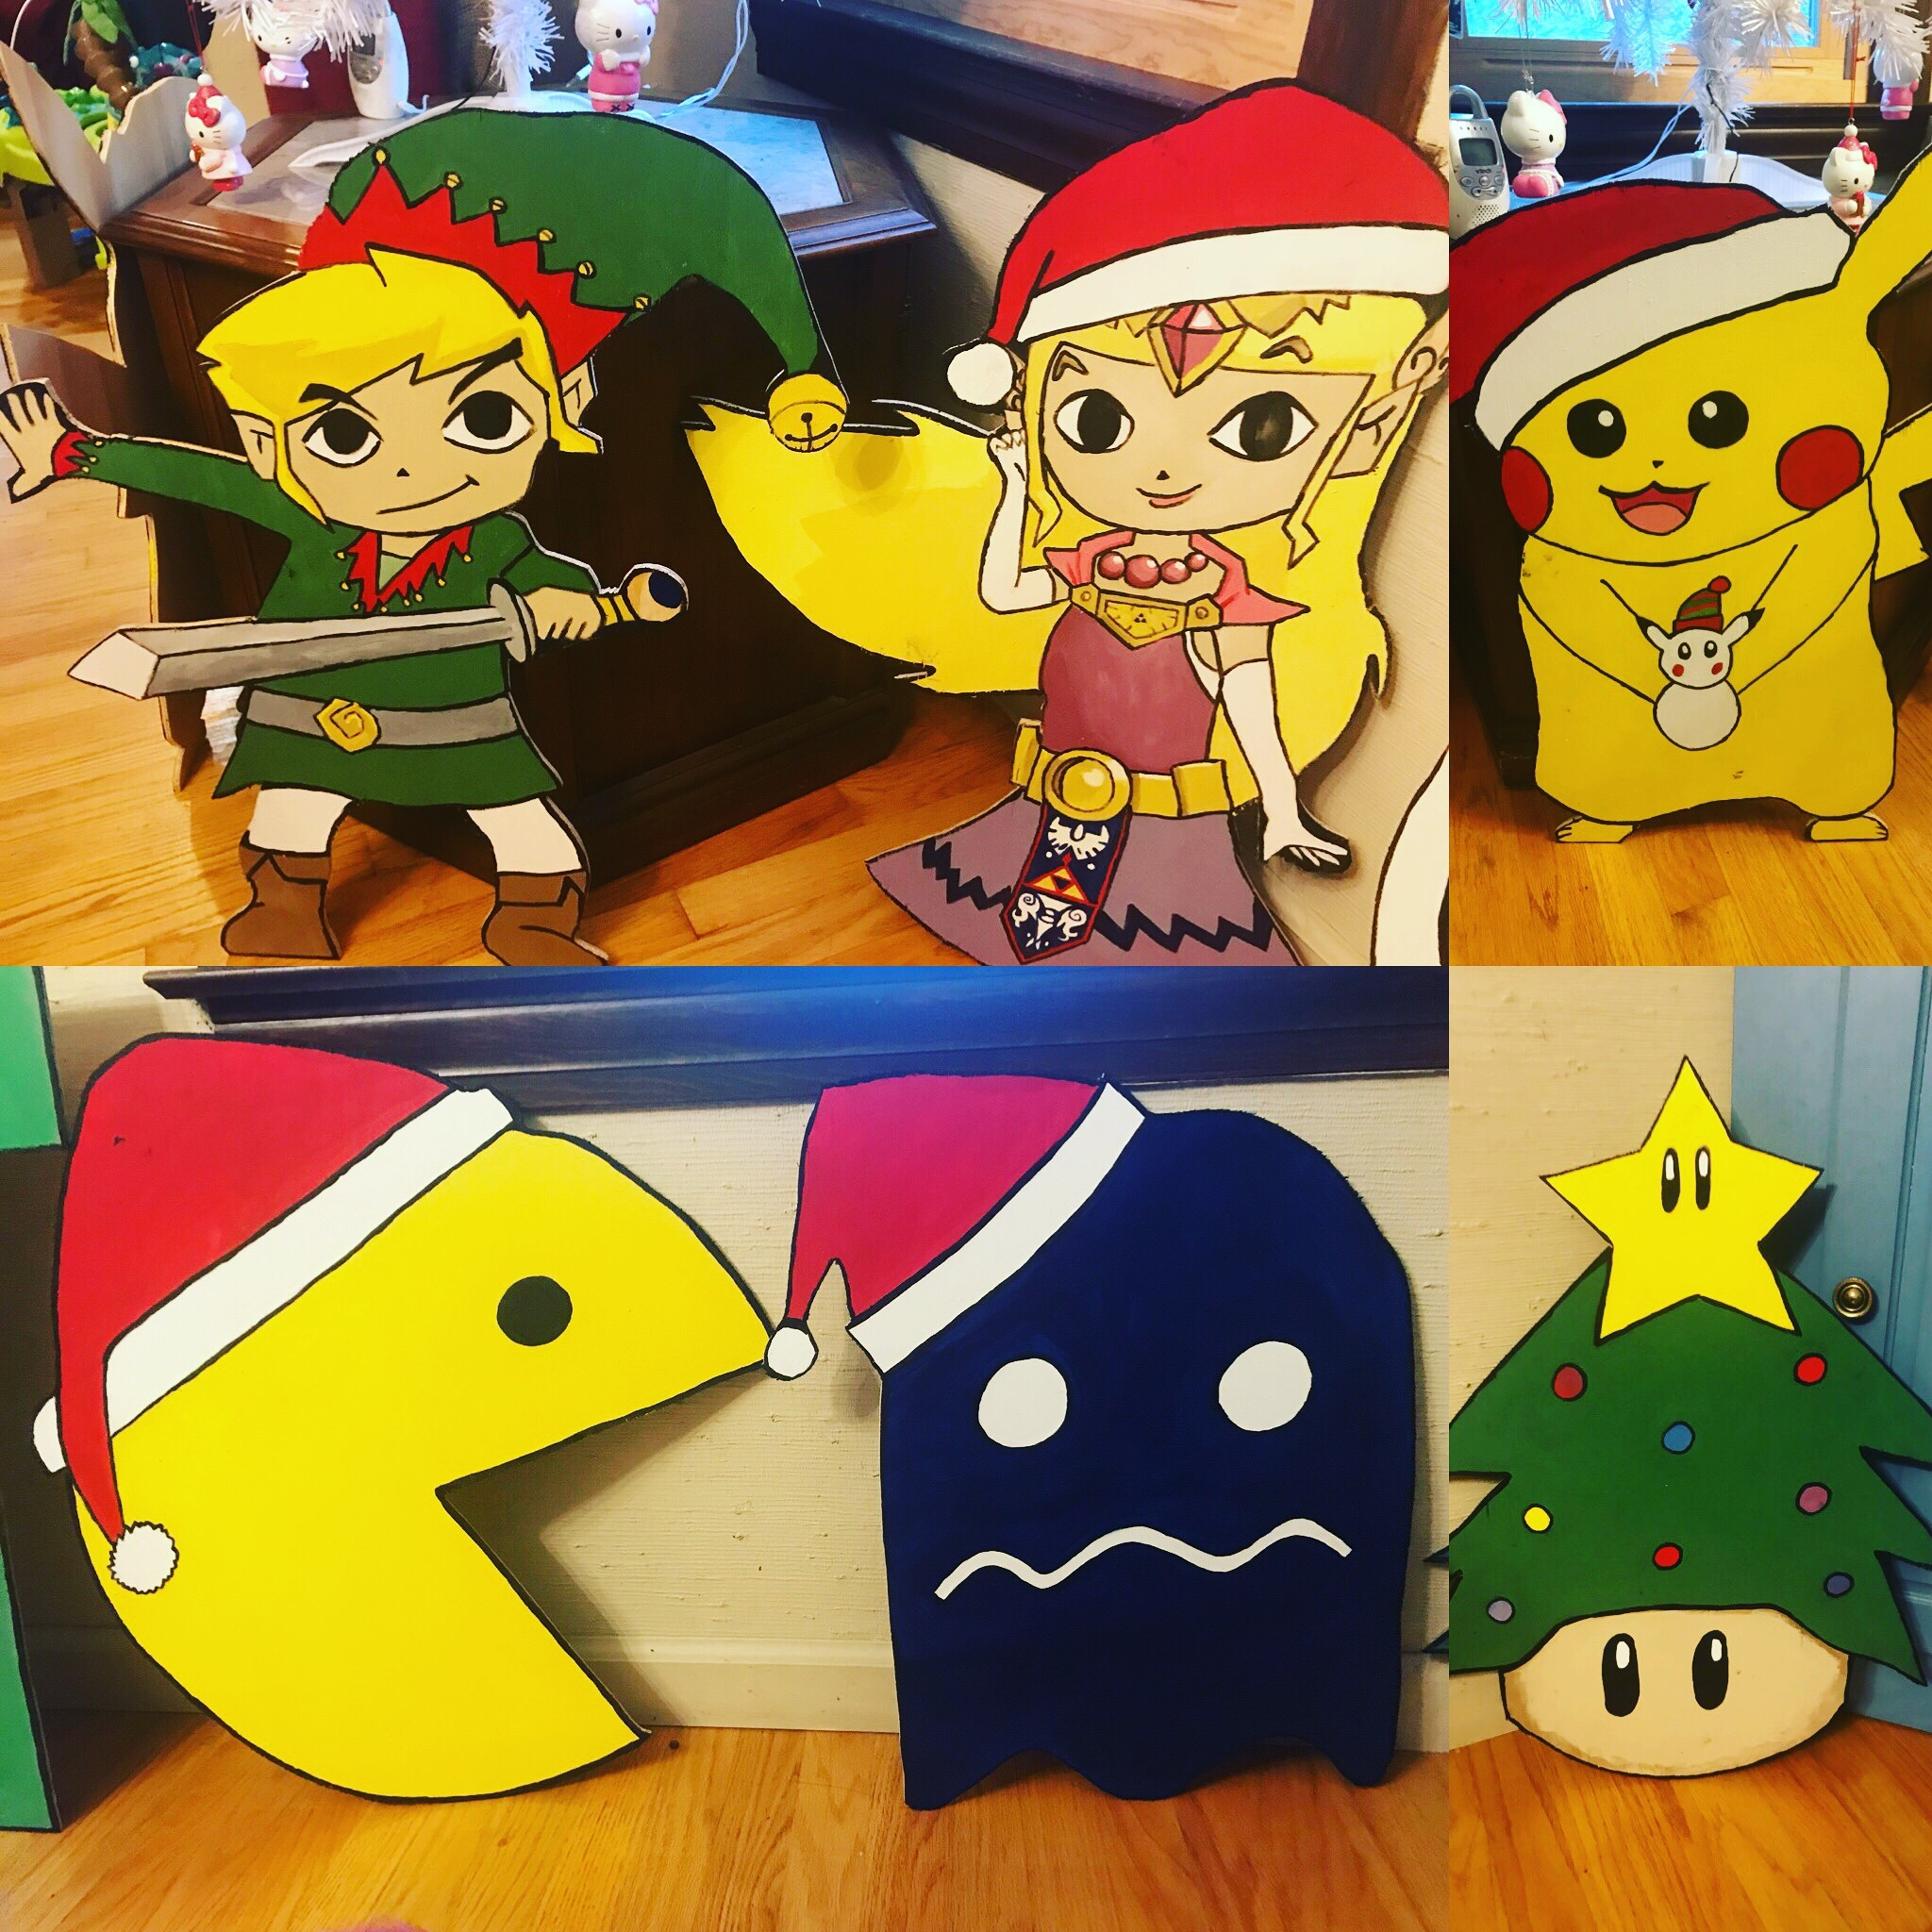 Zelda, Link, Pikachu, PacMan (with ghost), and Christmas Mushroom